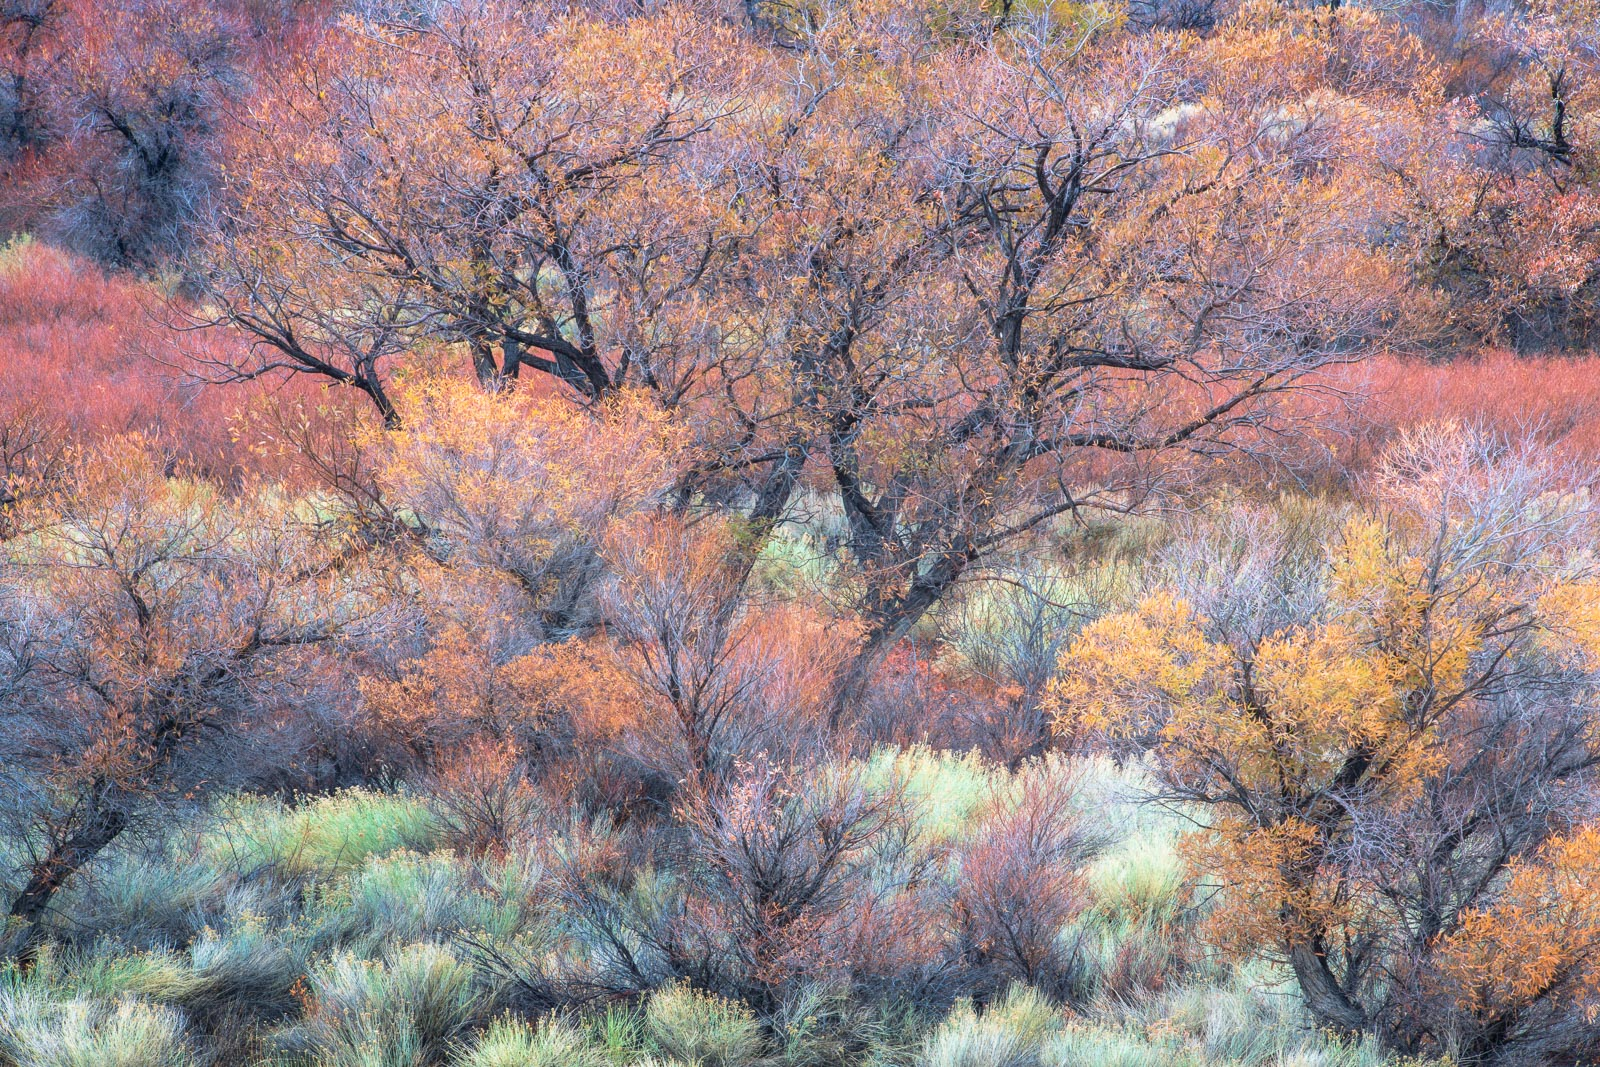 Colorful cottonwoods, rabbnitbrush and sage as they transition from autumn xolor to winter hues.